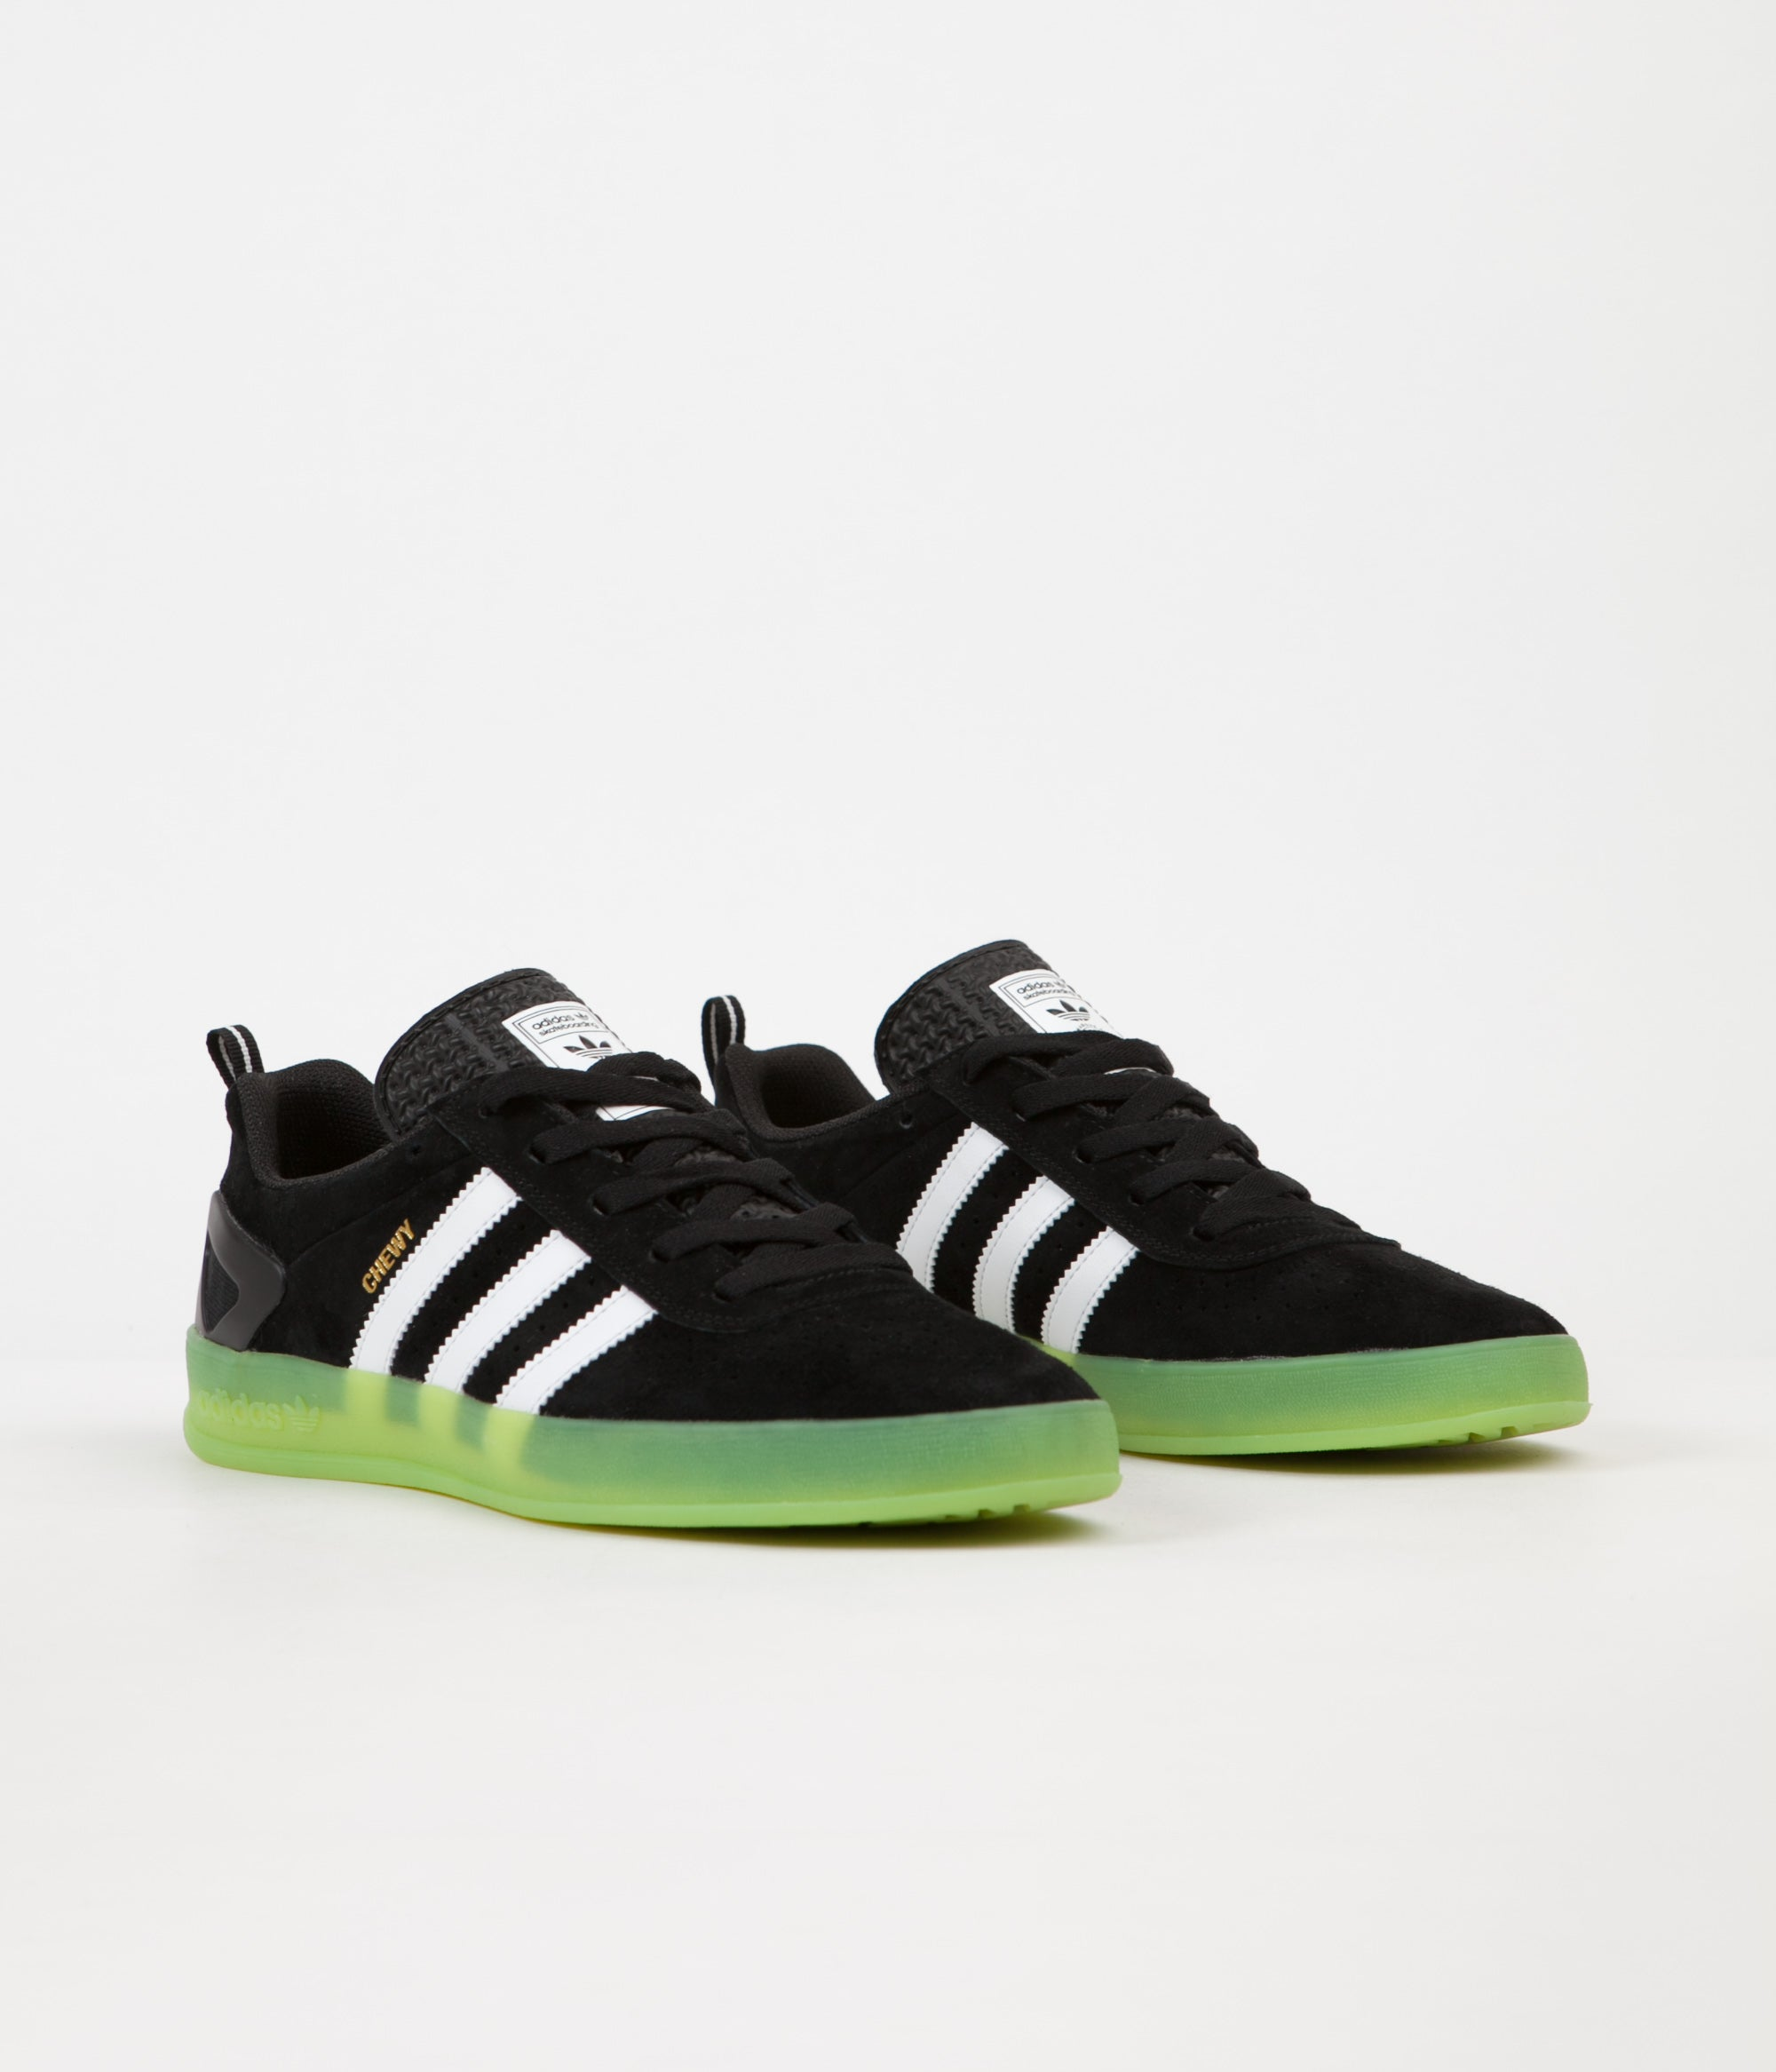 Adidas x Palace Pro 'Chewy' Shoes - Black / White / Green